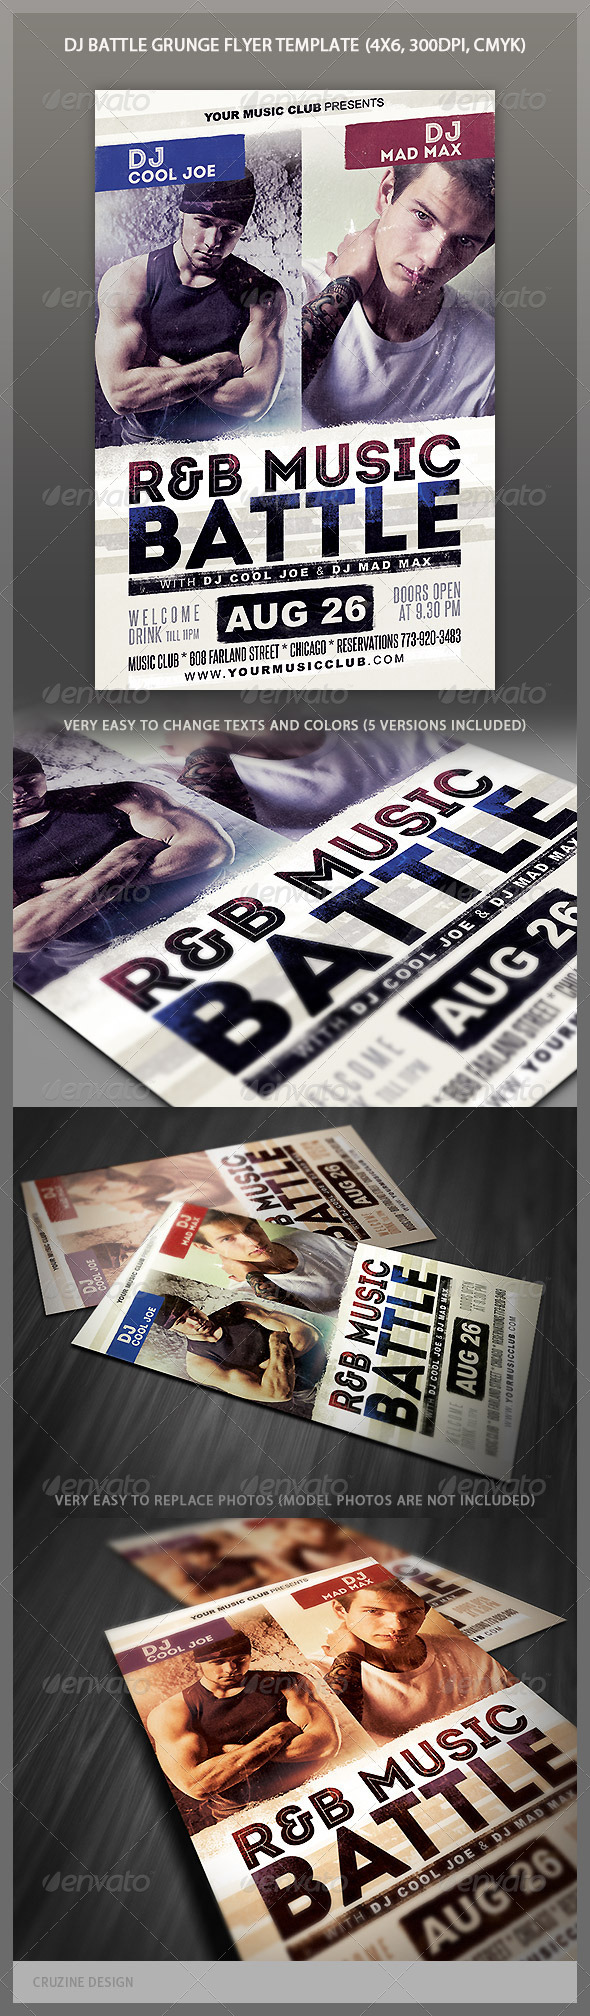 Music Battle Grunge Party Flyer - Events Flyers